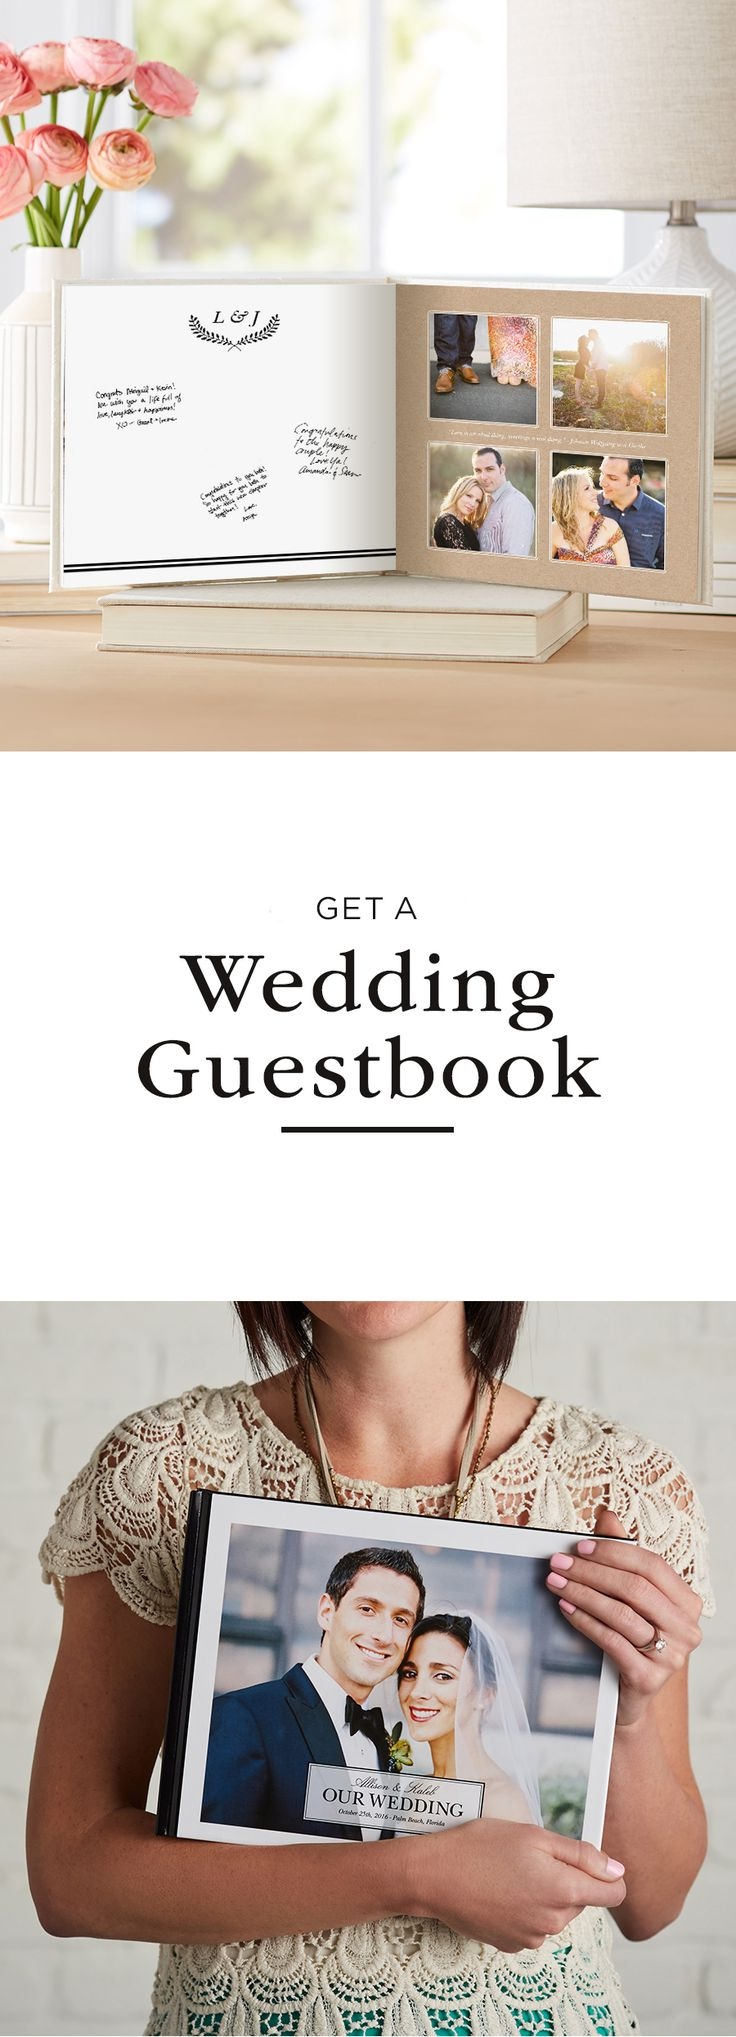 Shutterfly wants to help celebrate your wedding! Sign up to receive a wedding guest book to showcase your engagement photos with a variety of wedding guestbook ideas.